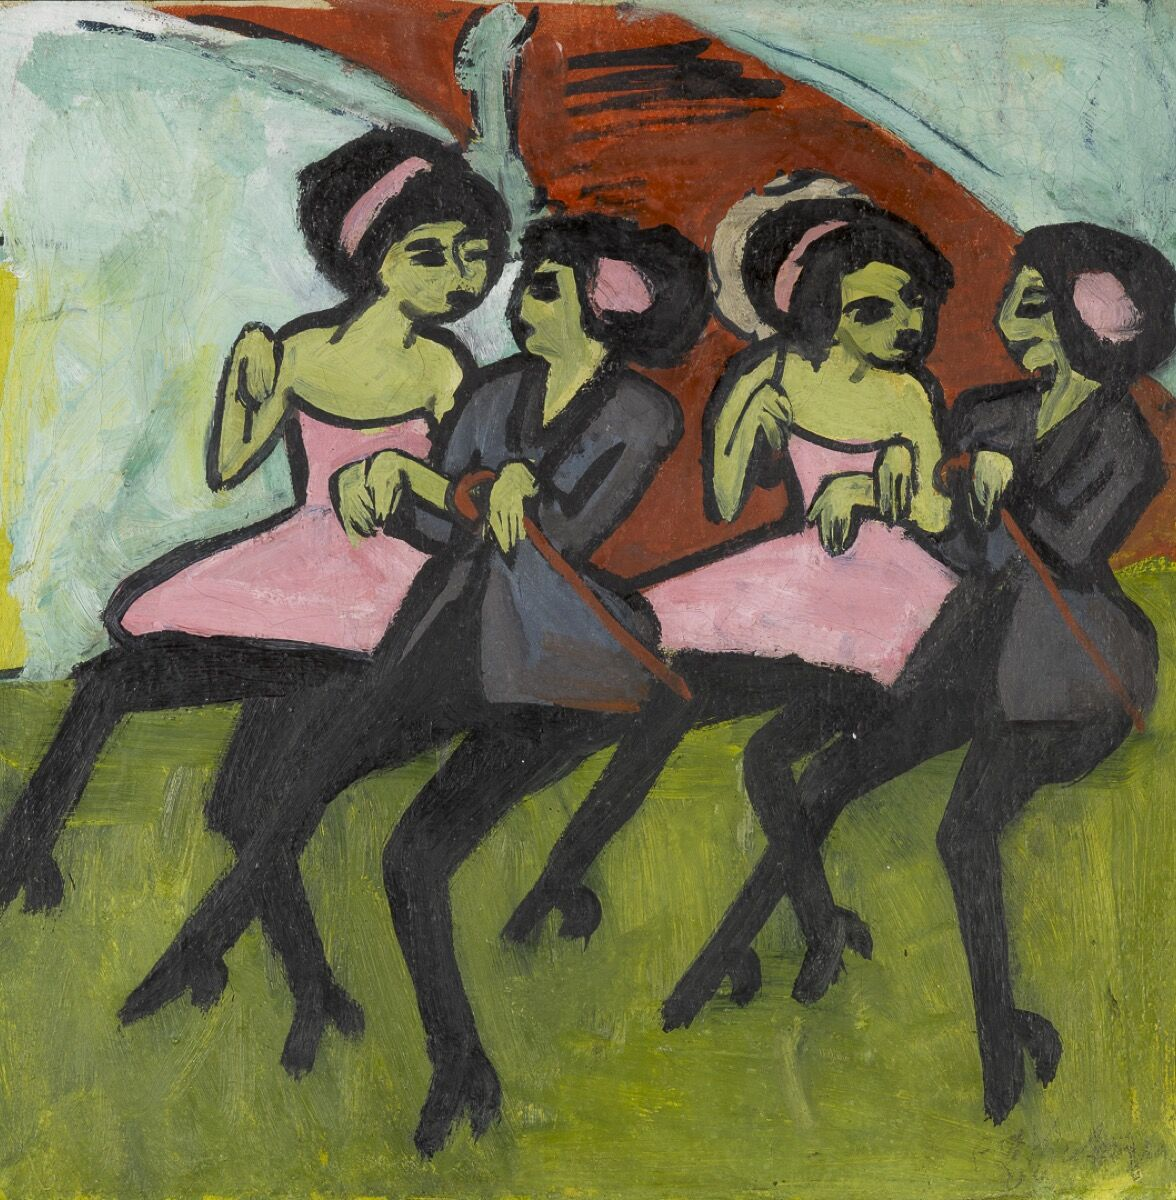 Ernst Ludwig Kirchner, Panama Dancers, 1910–11. Photo by Bridgeman Images. Courtesy of the North Carolina Museum of Art, Raleigh.